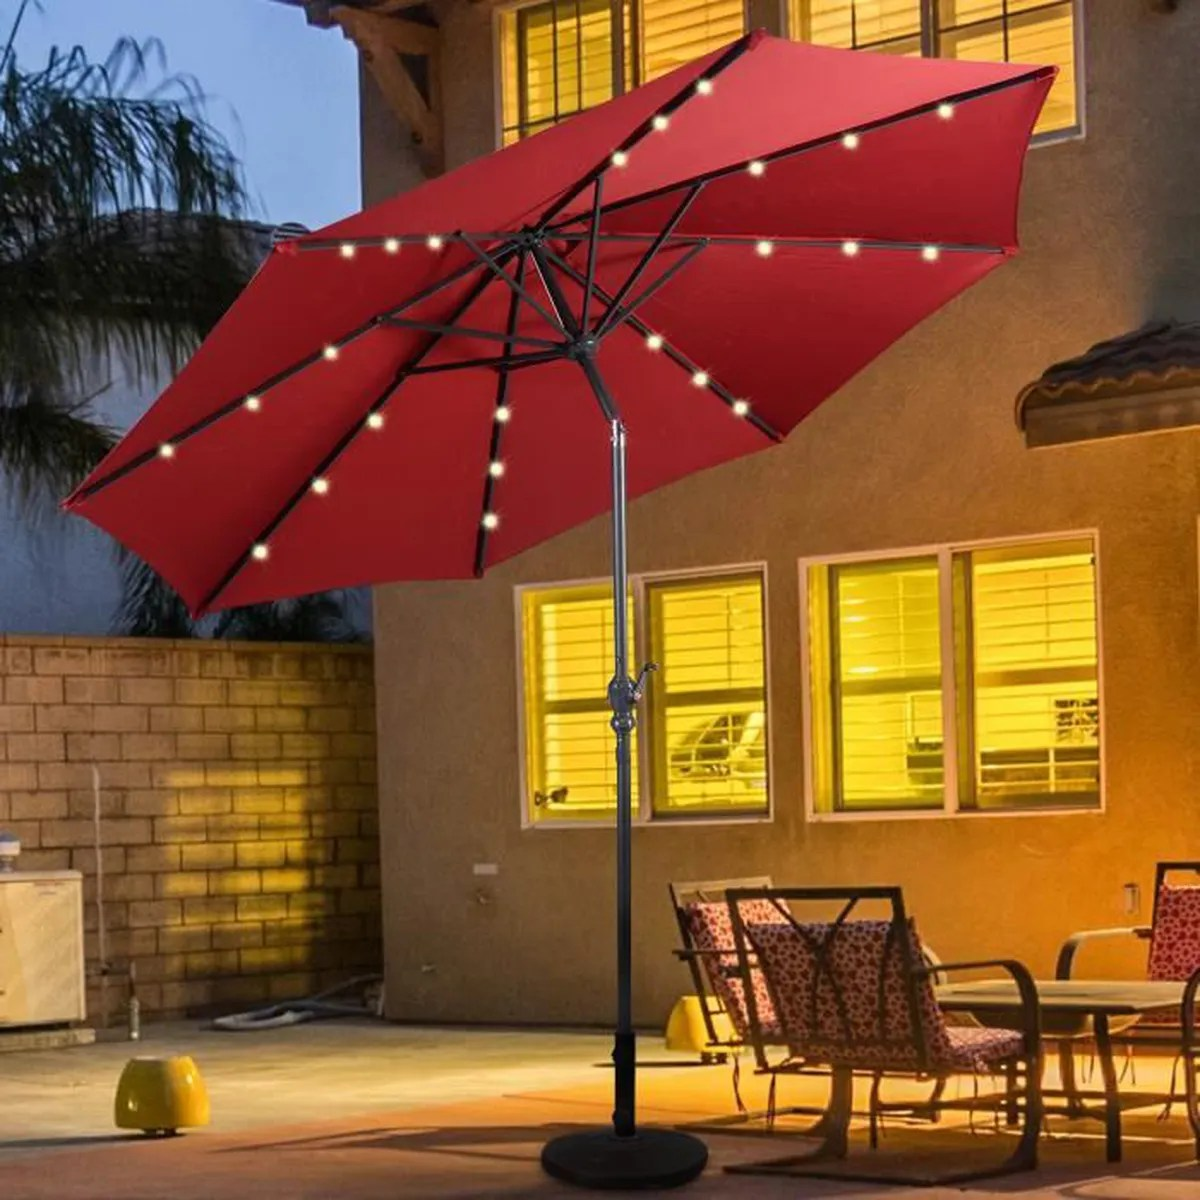 Eclairage Led Parasol Parasol Inclinable Diamètre 3m Avec Led En Acier Patio